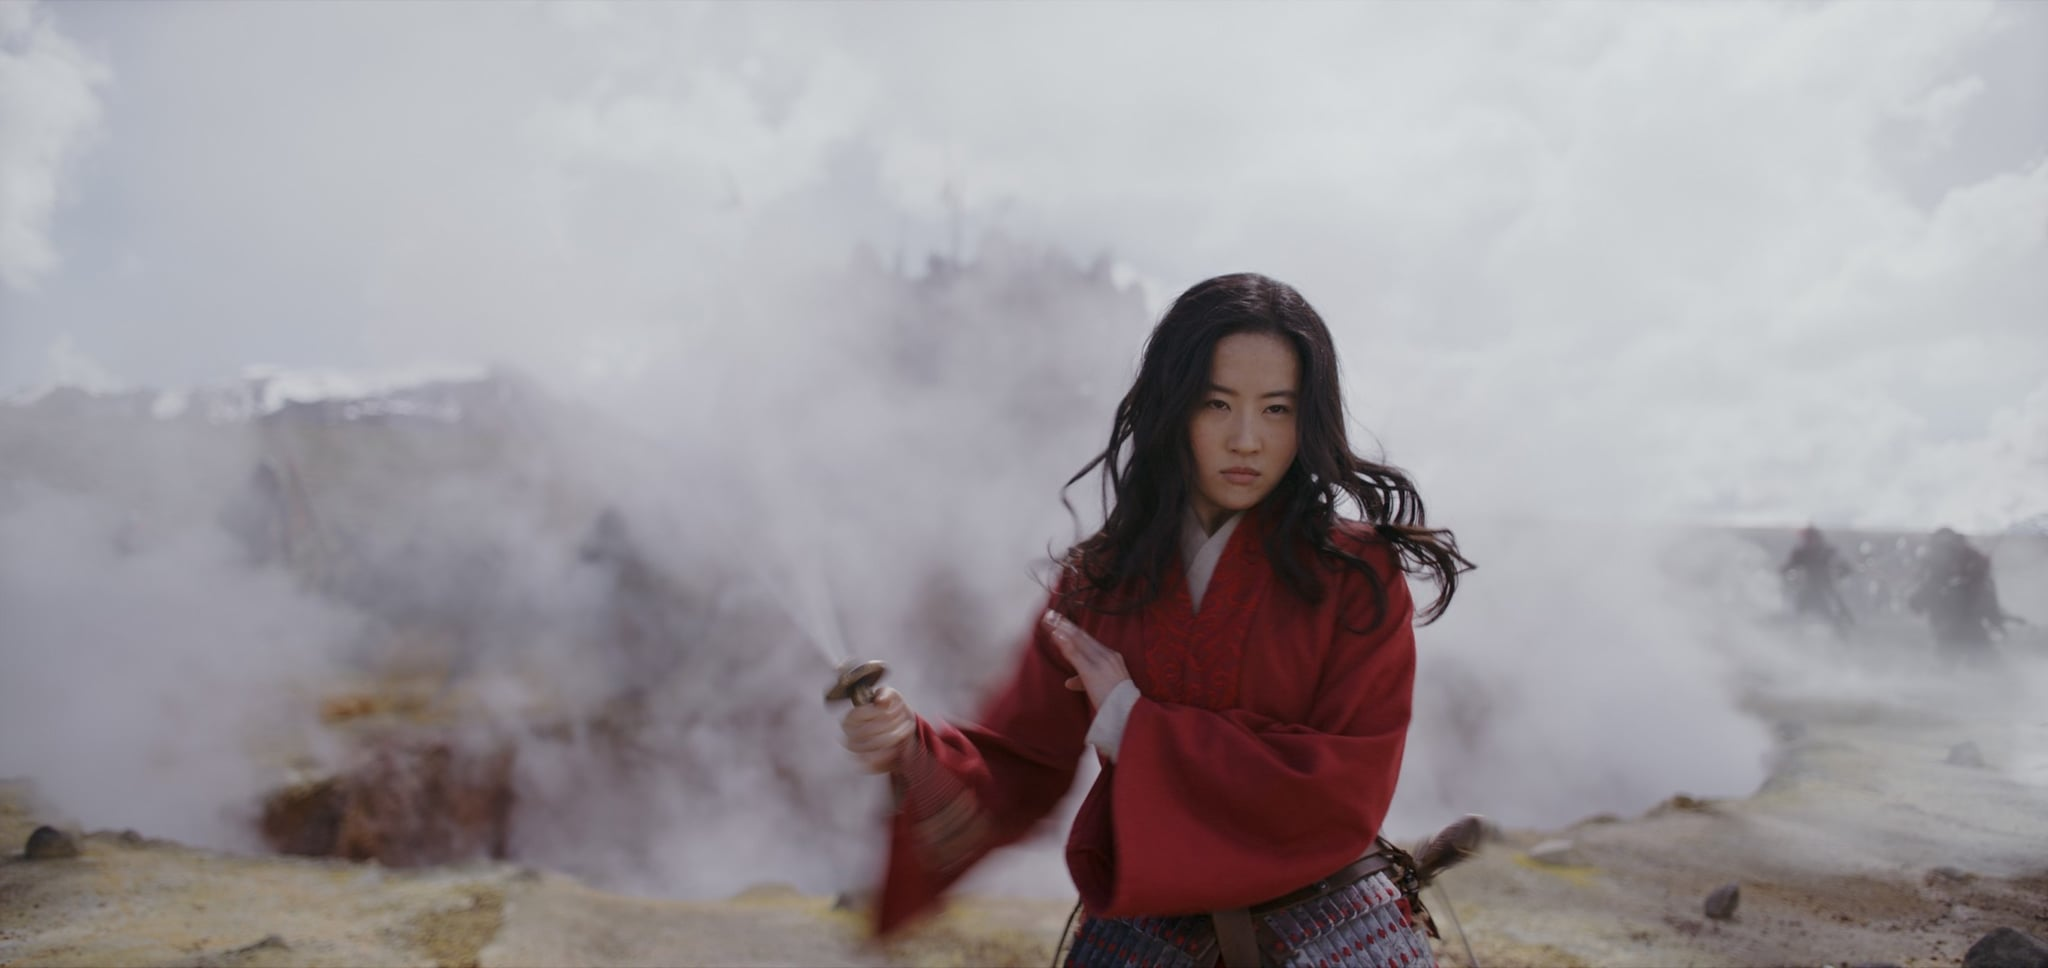 MULAN, Yifei Liu, 2020. © Walt Disney Studios Motion Pictures / Courtesy Everett Collection